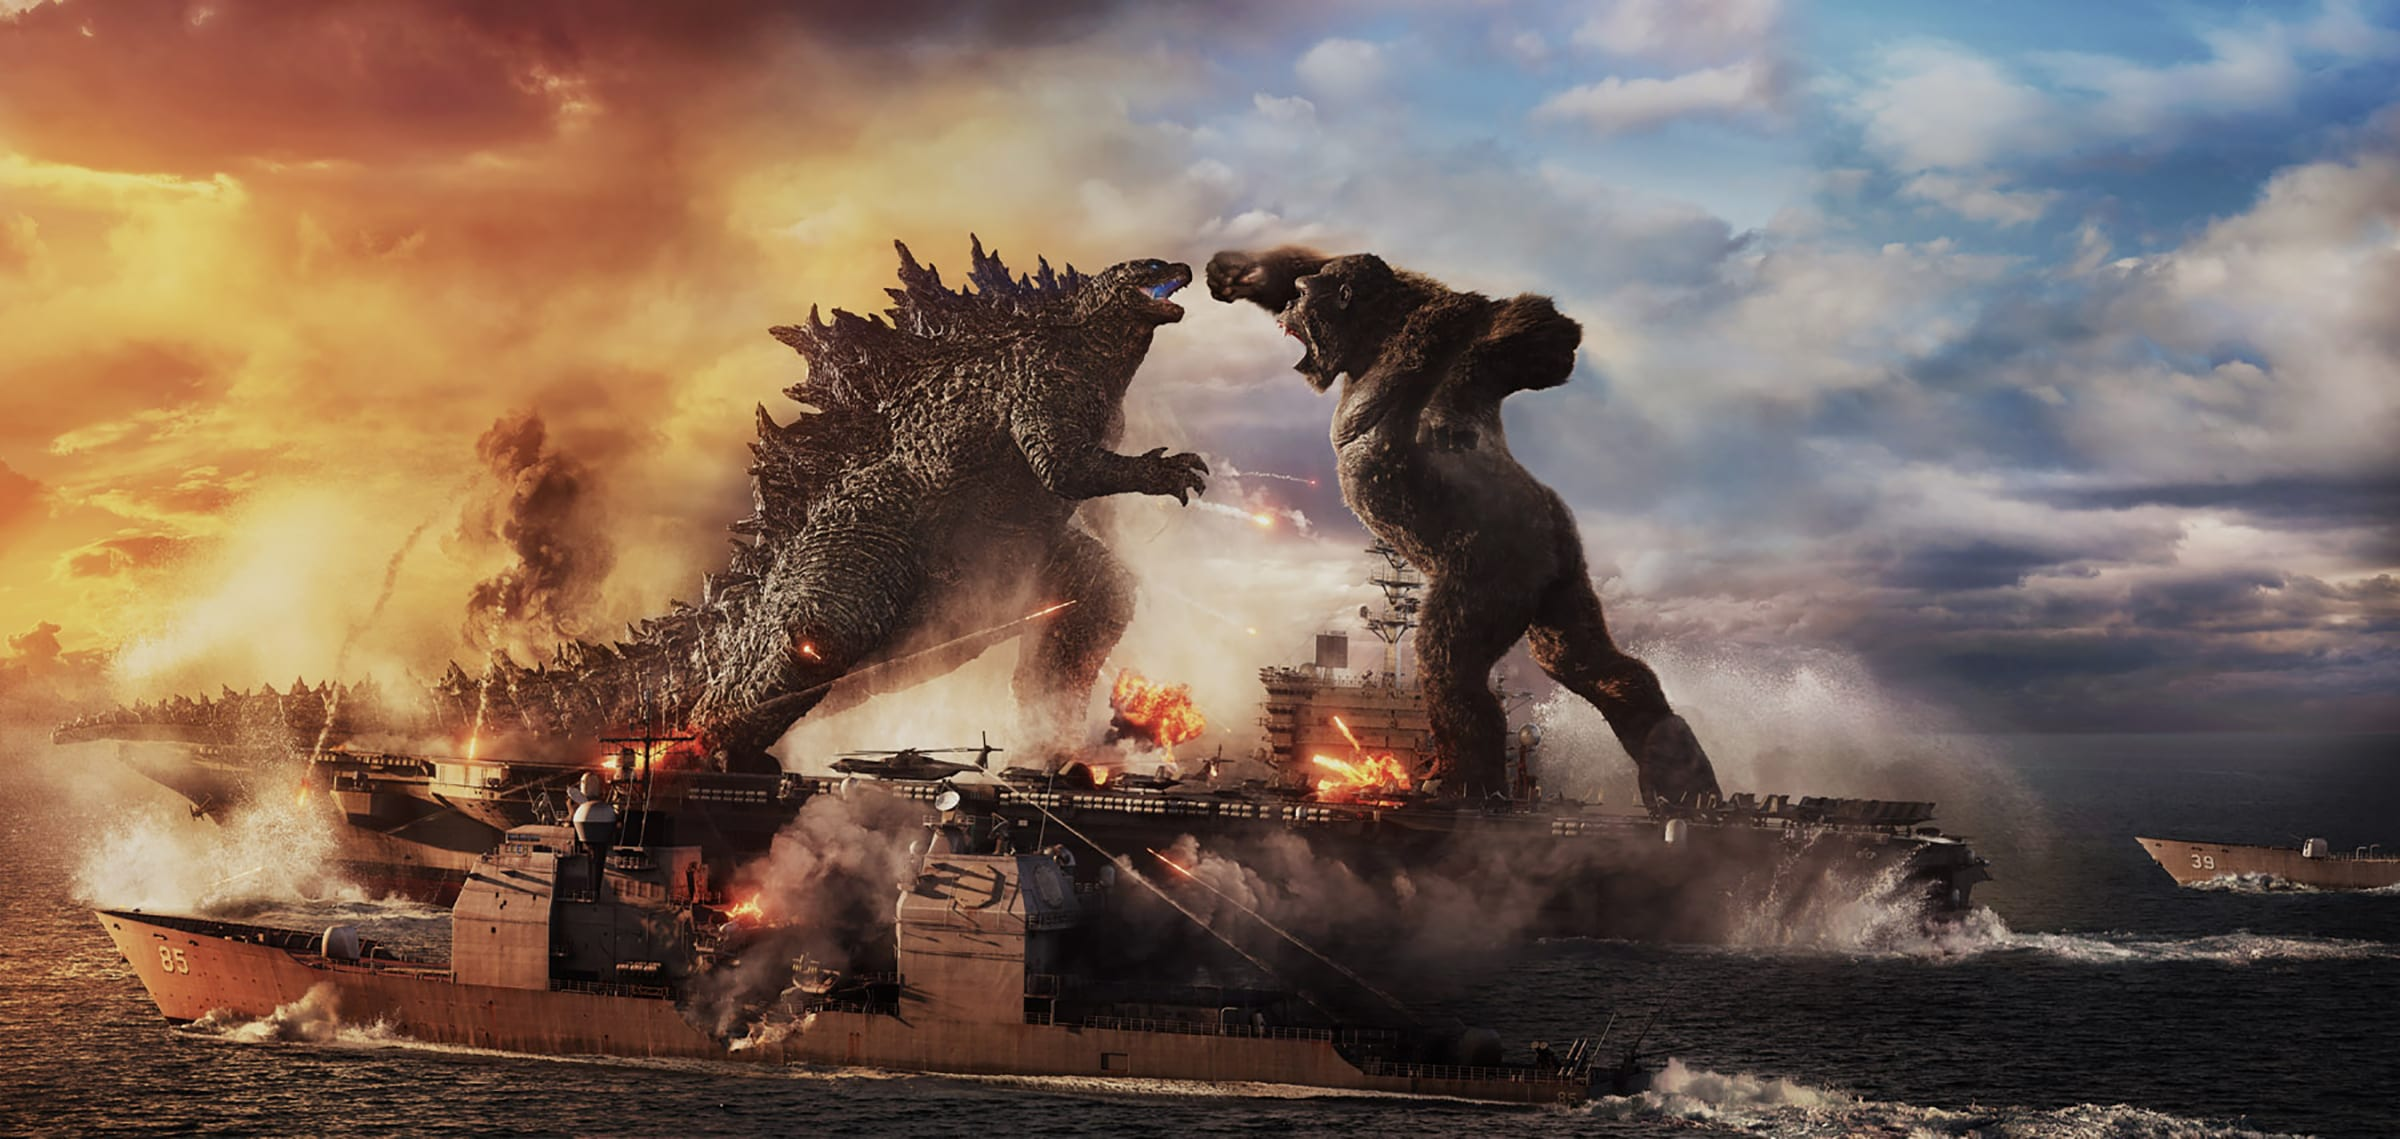 godzilla-vs-kong-monstermovie-trailer